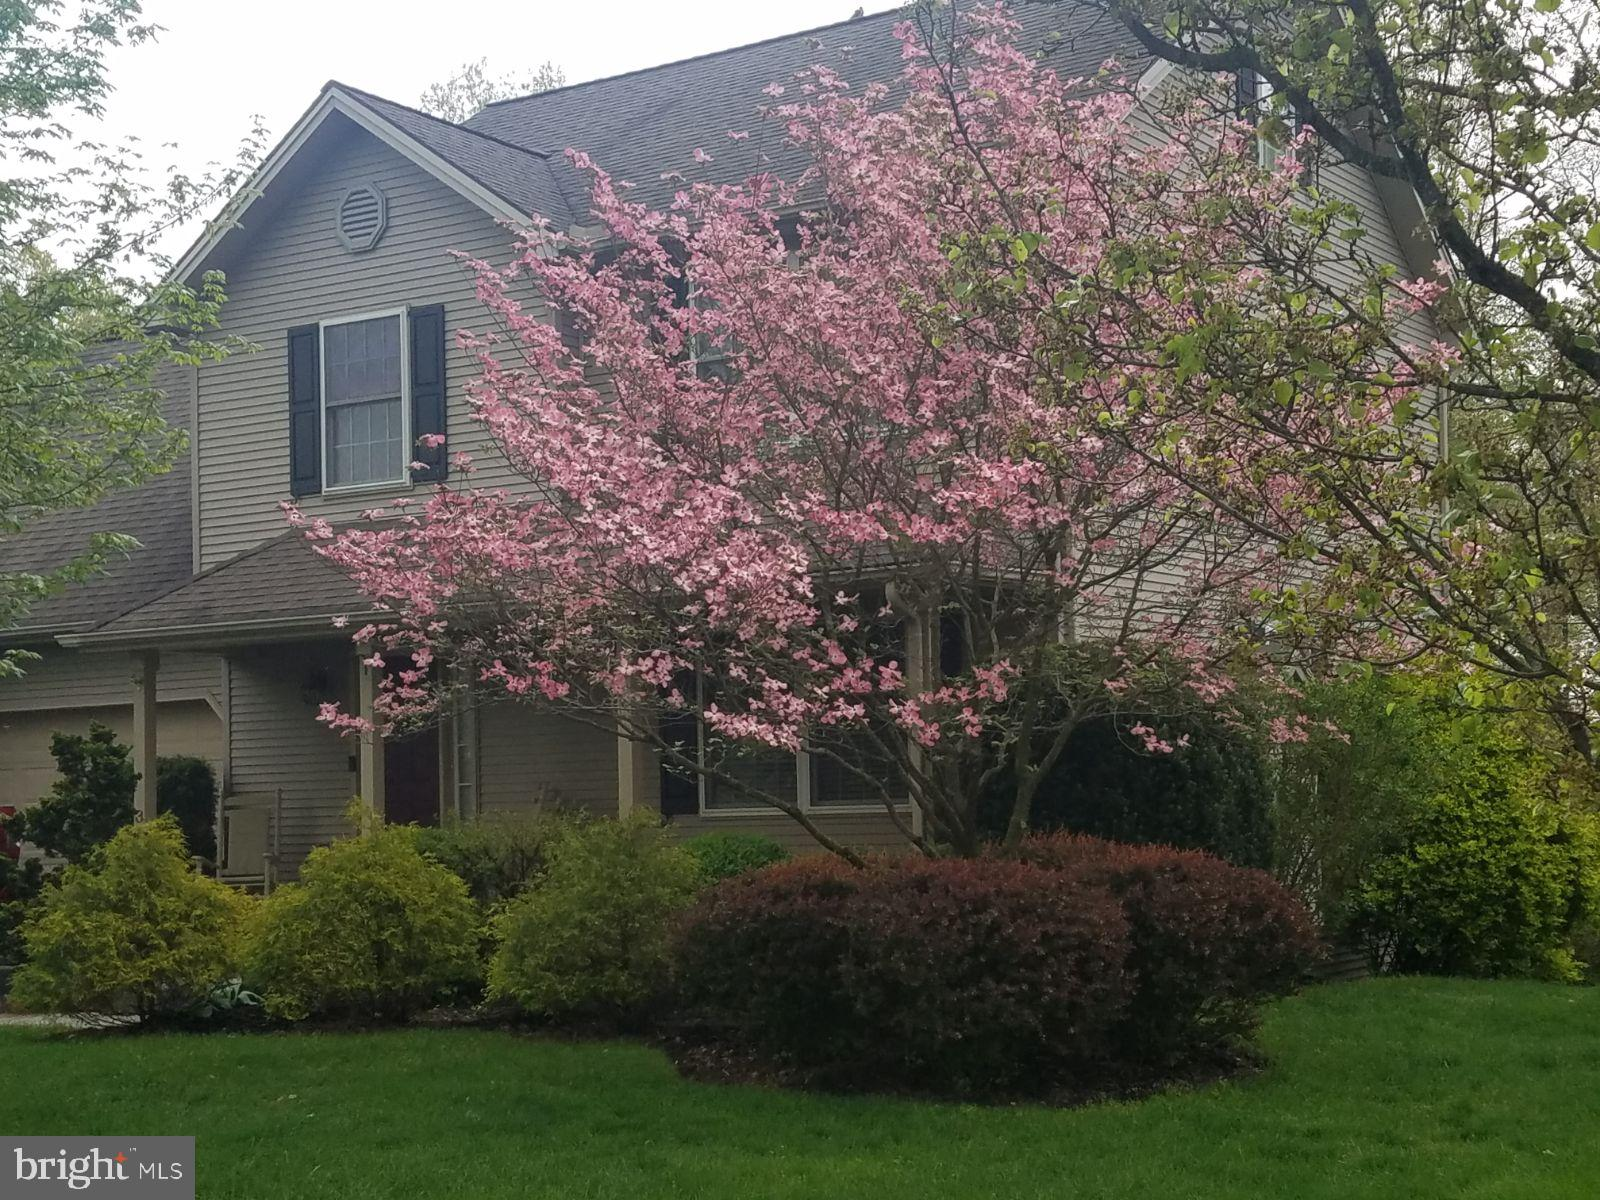 8 WOODVIEW DRIVE, MOUNT HOLLY SPRINGS, PA 17065